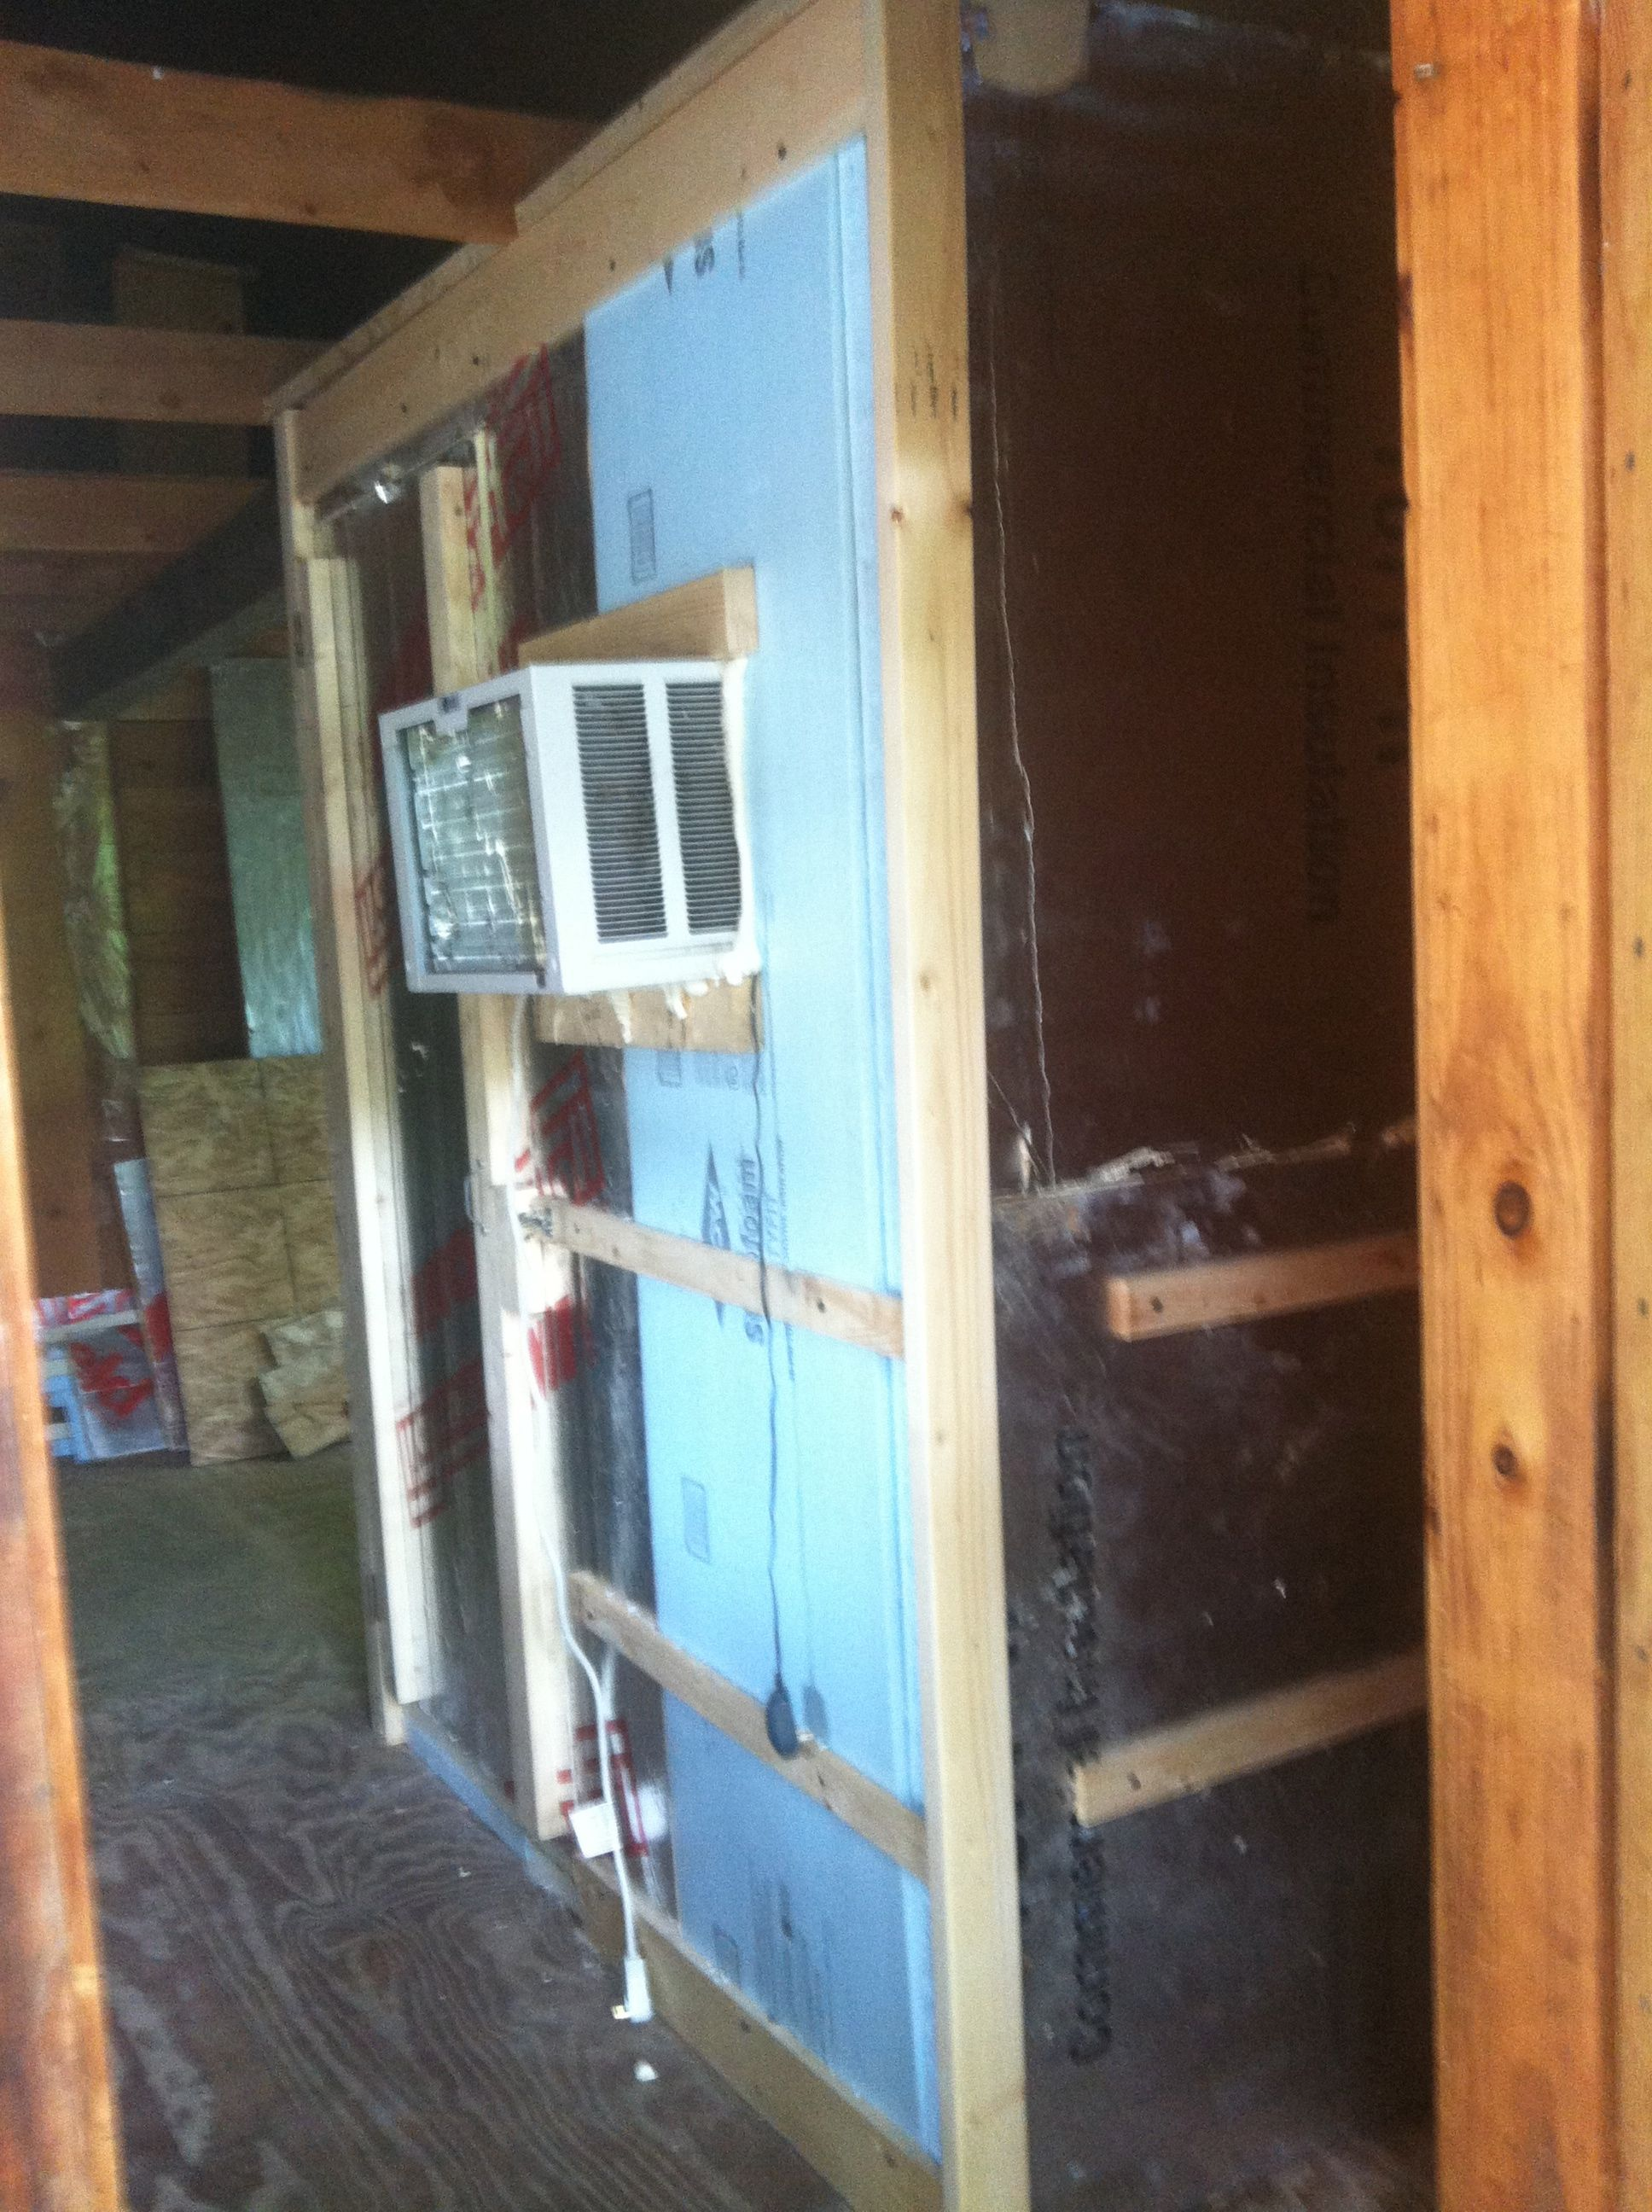 Diy Walk In Freezer All Said And Done For 1000 Walk In Freezer Diy Overhead Garage Storage Garage Screen Door